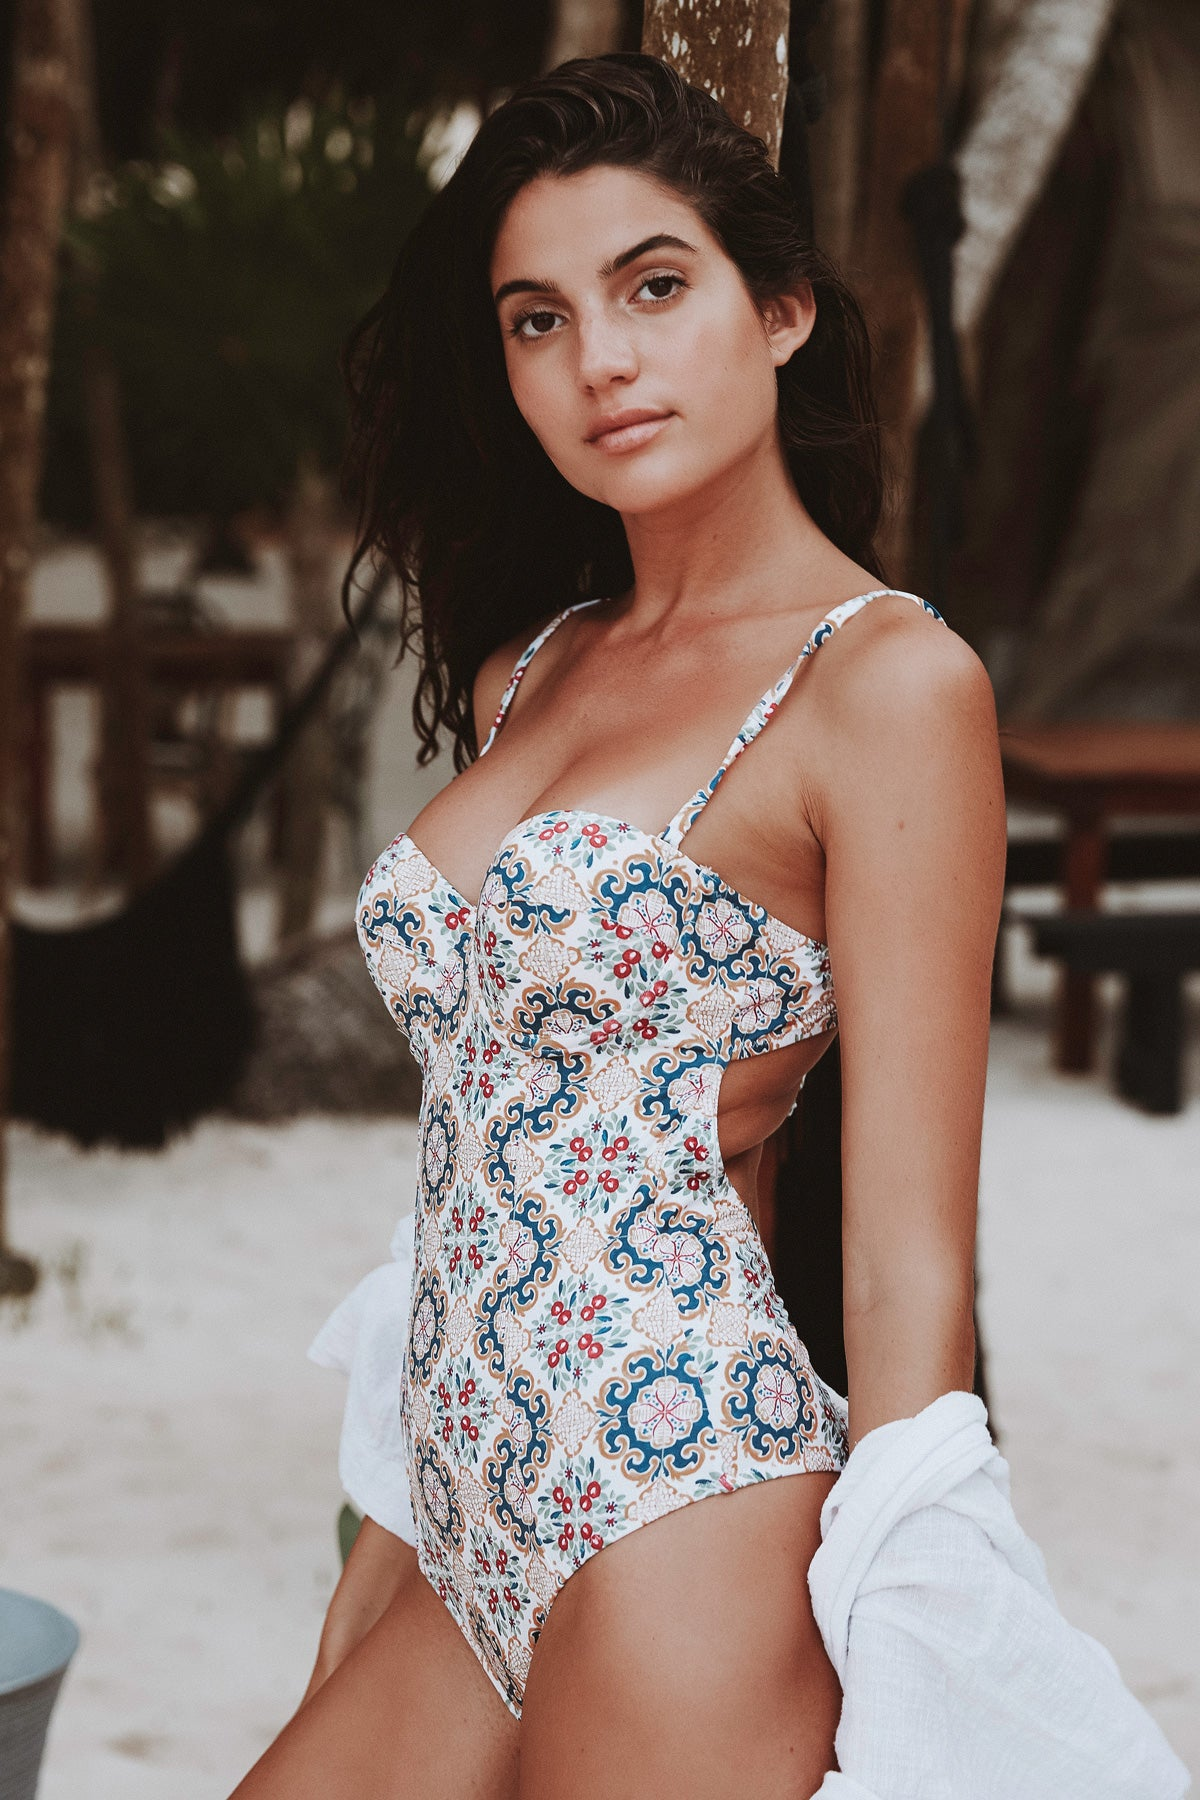 d59e09890df10 sorrento onepiece swimsuit by vingeproject